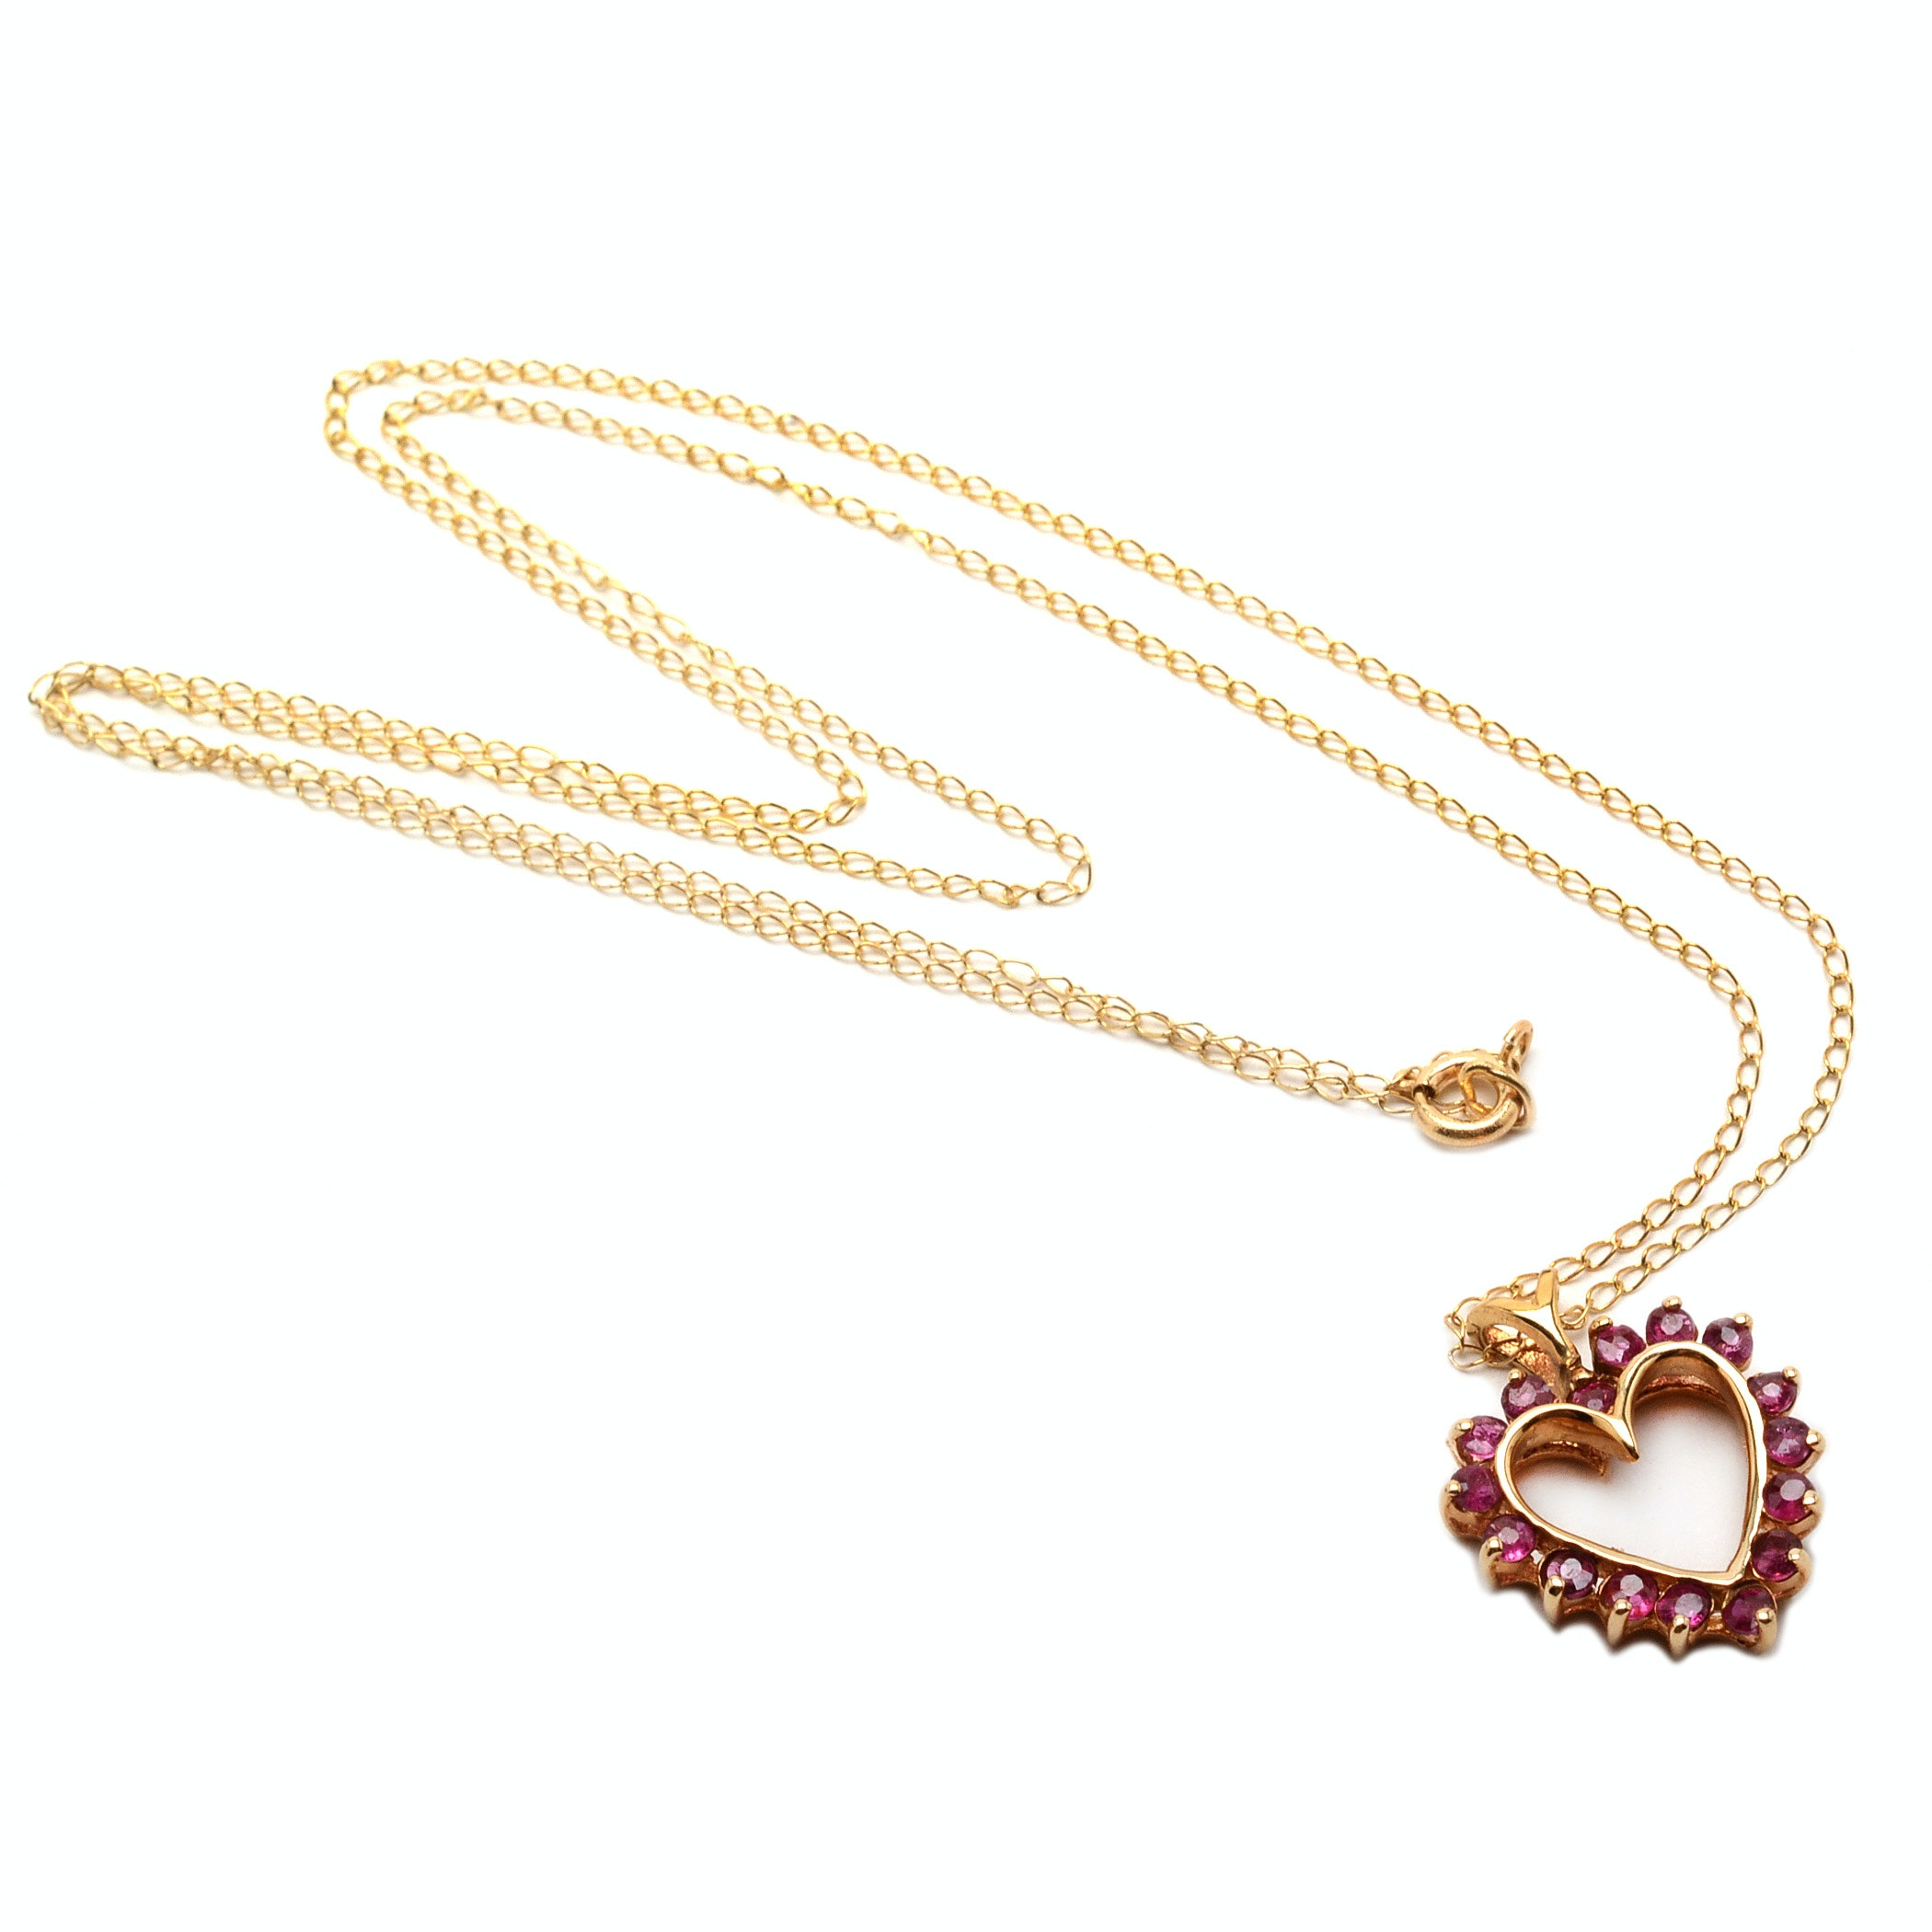 10K Yellow Gold Ruby Heart Pendant, Chain with 14K Clasp